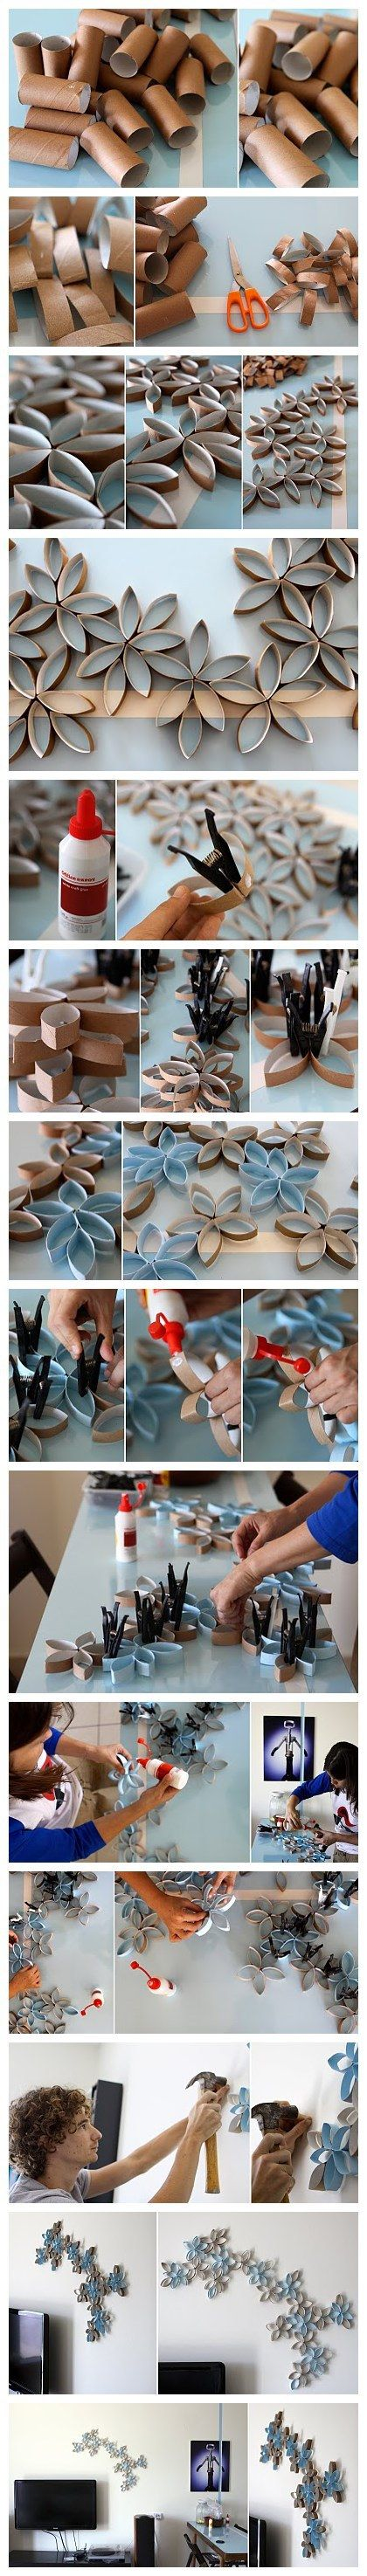 wall-decor-projects-5